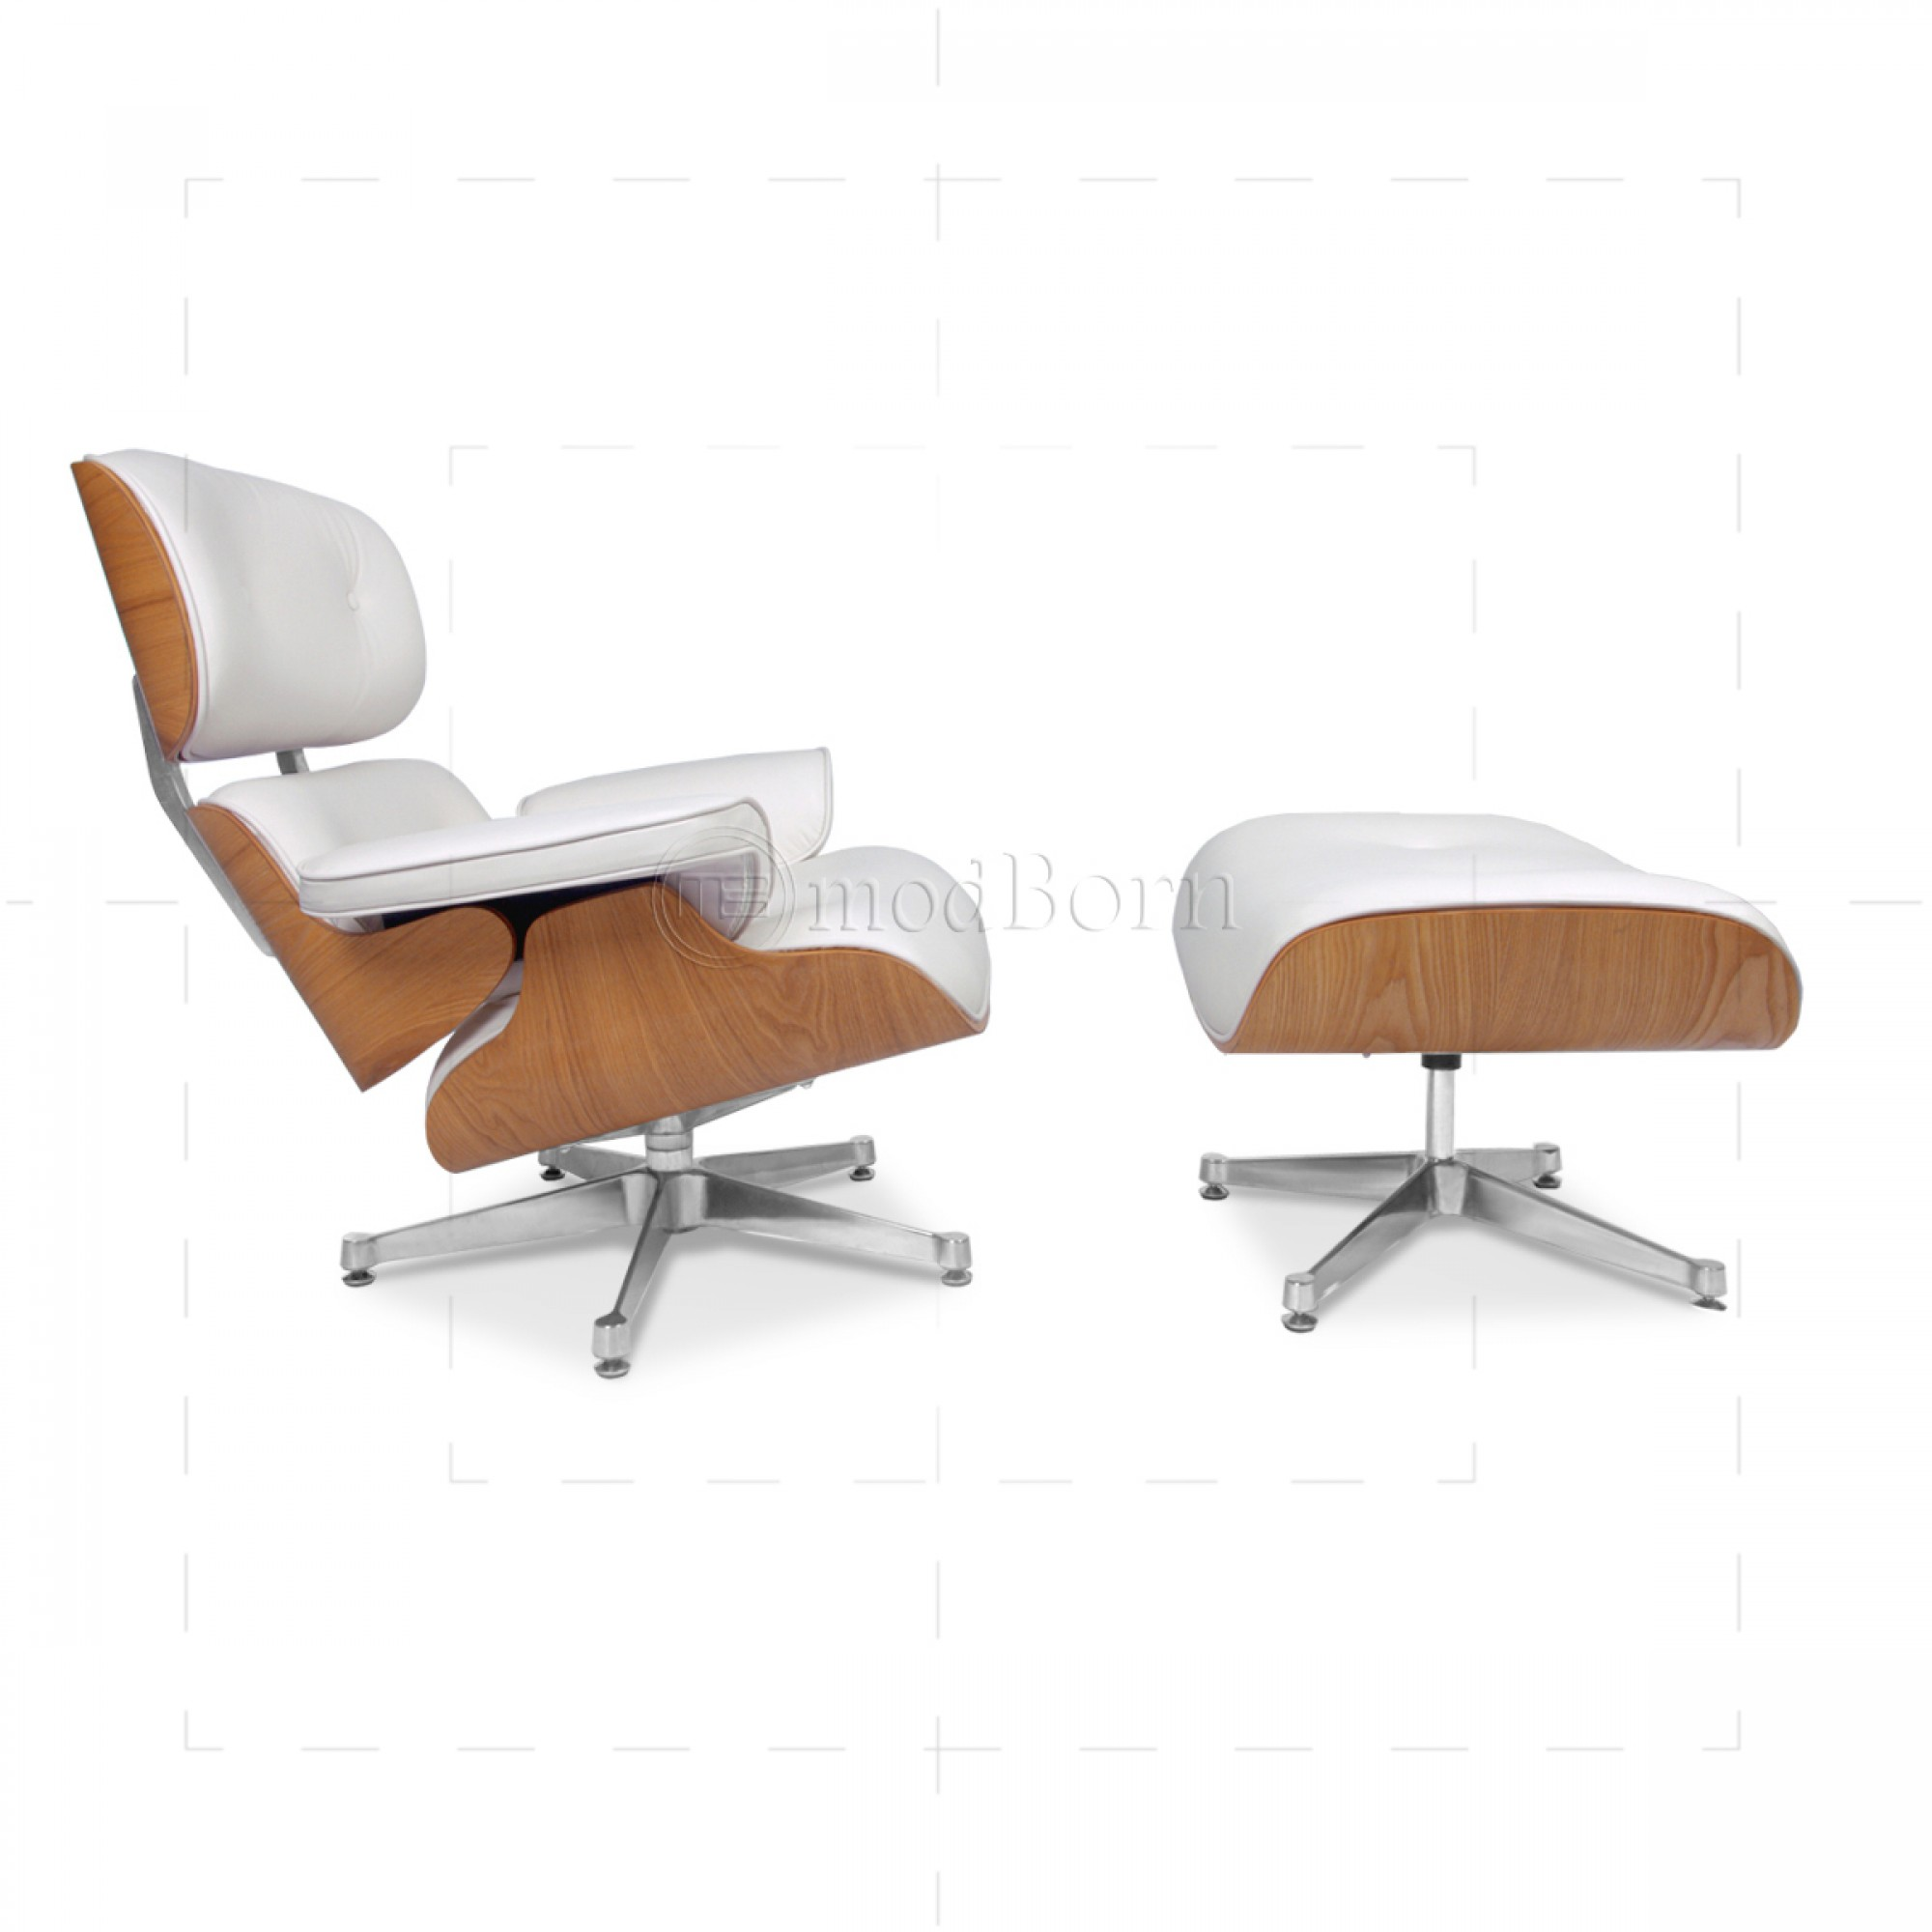 eames style lounge chair and ottoman white leather. Black Bedroom Furniture Sets. Home Design Ideas